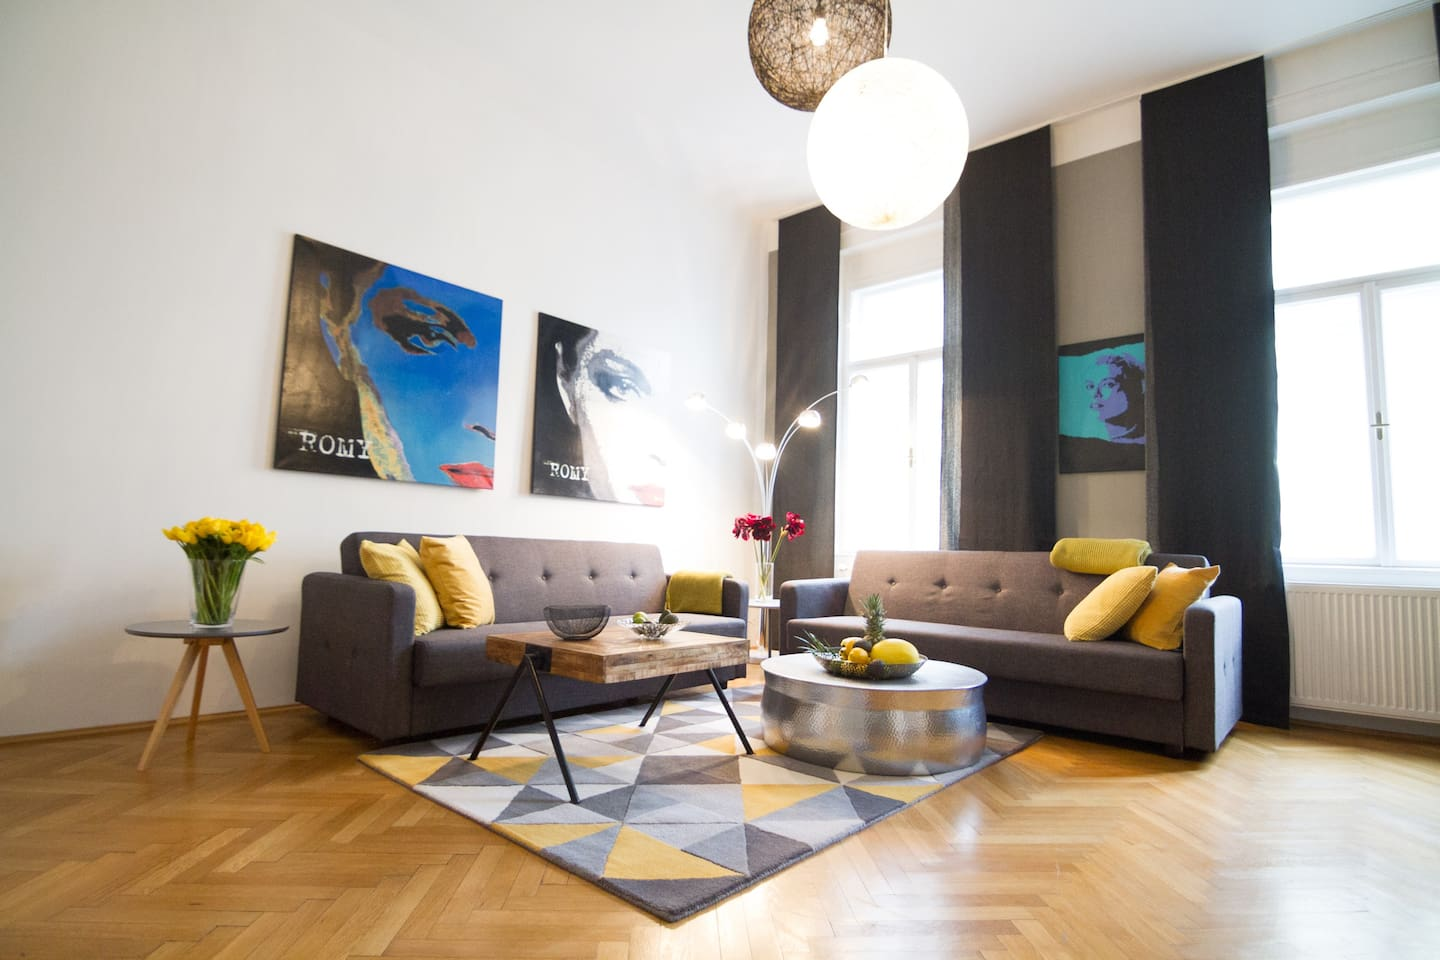 Spacious and bright Living Room with 2 Bed Couches, high ceiling, herringbone floors.